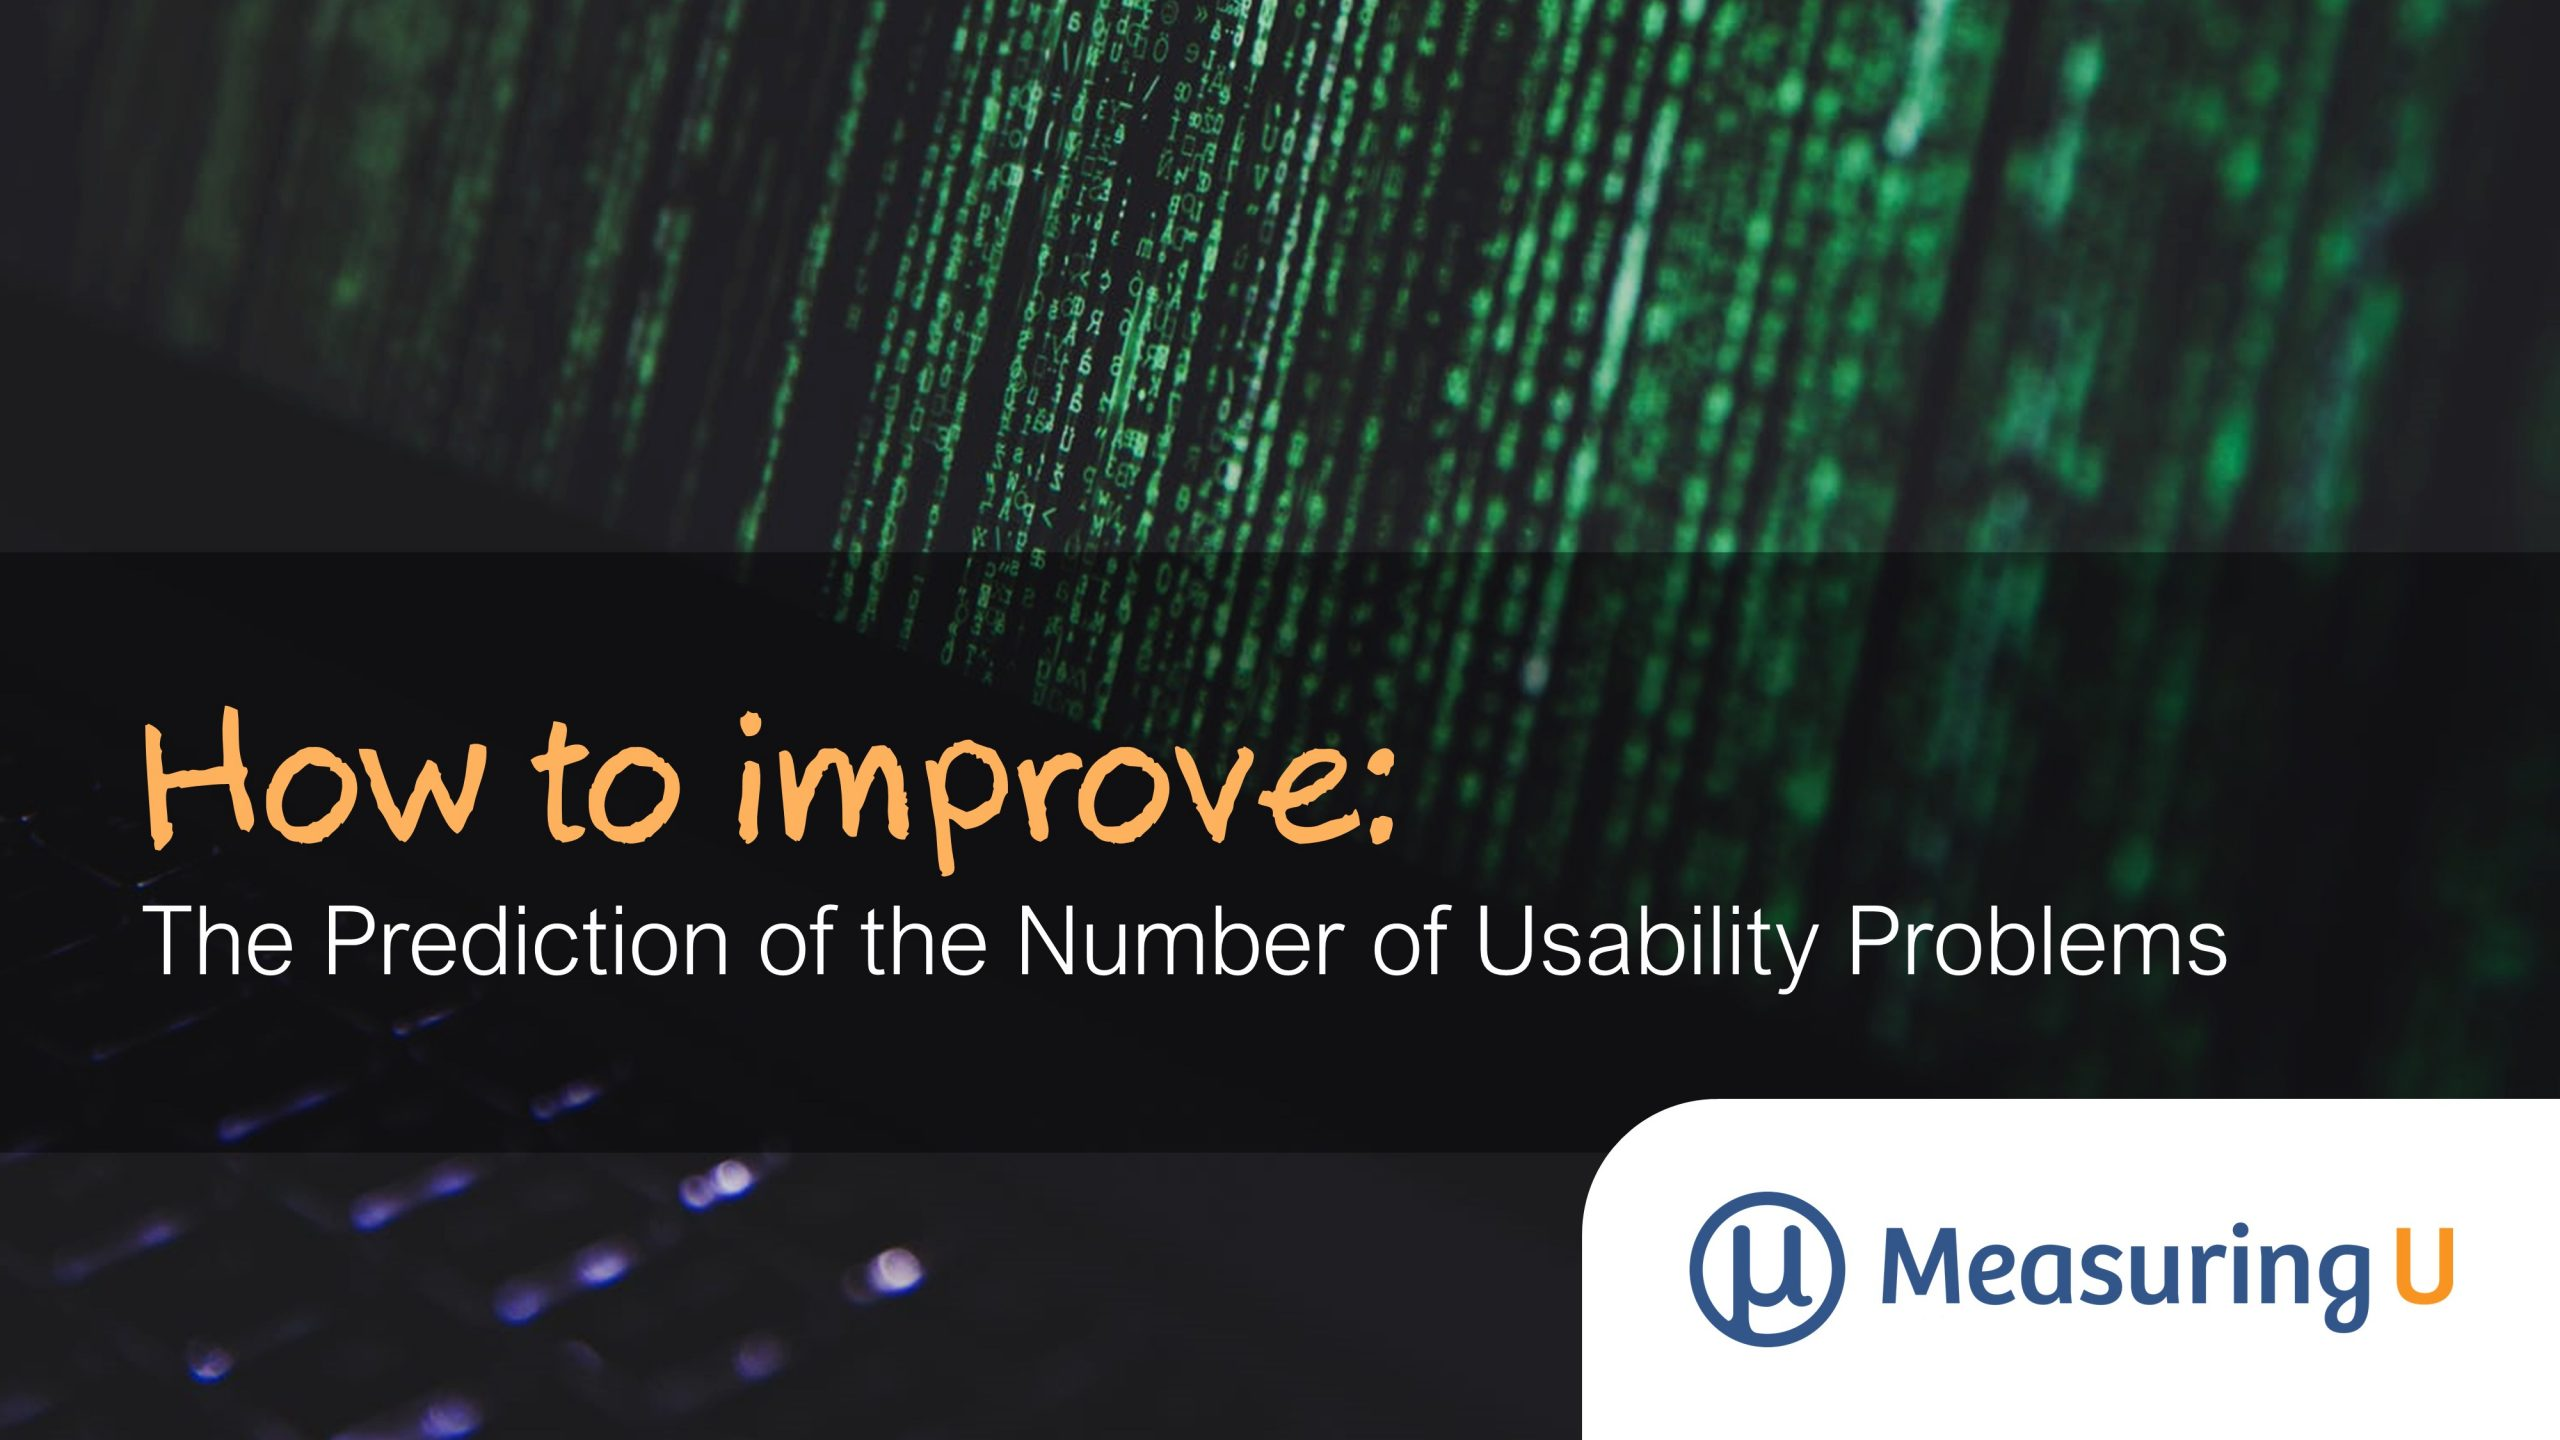 Improving the Prediction of the Number of Usability Problems